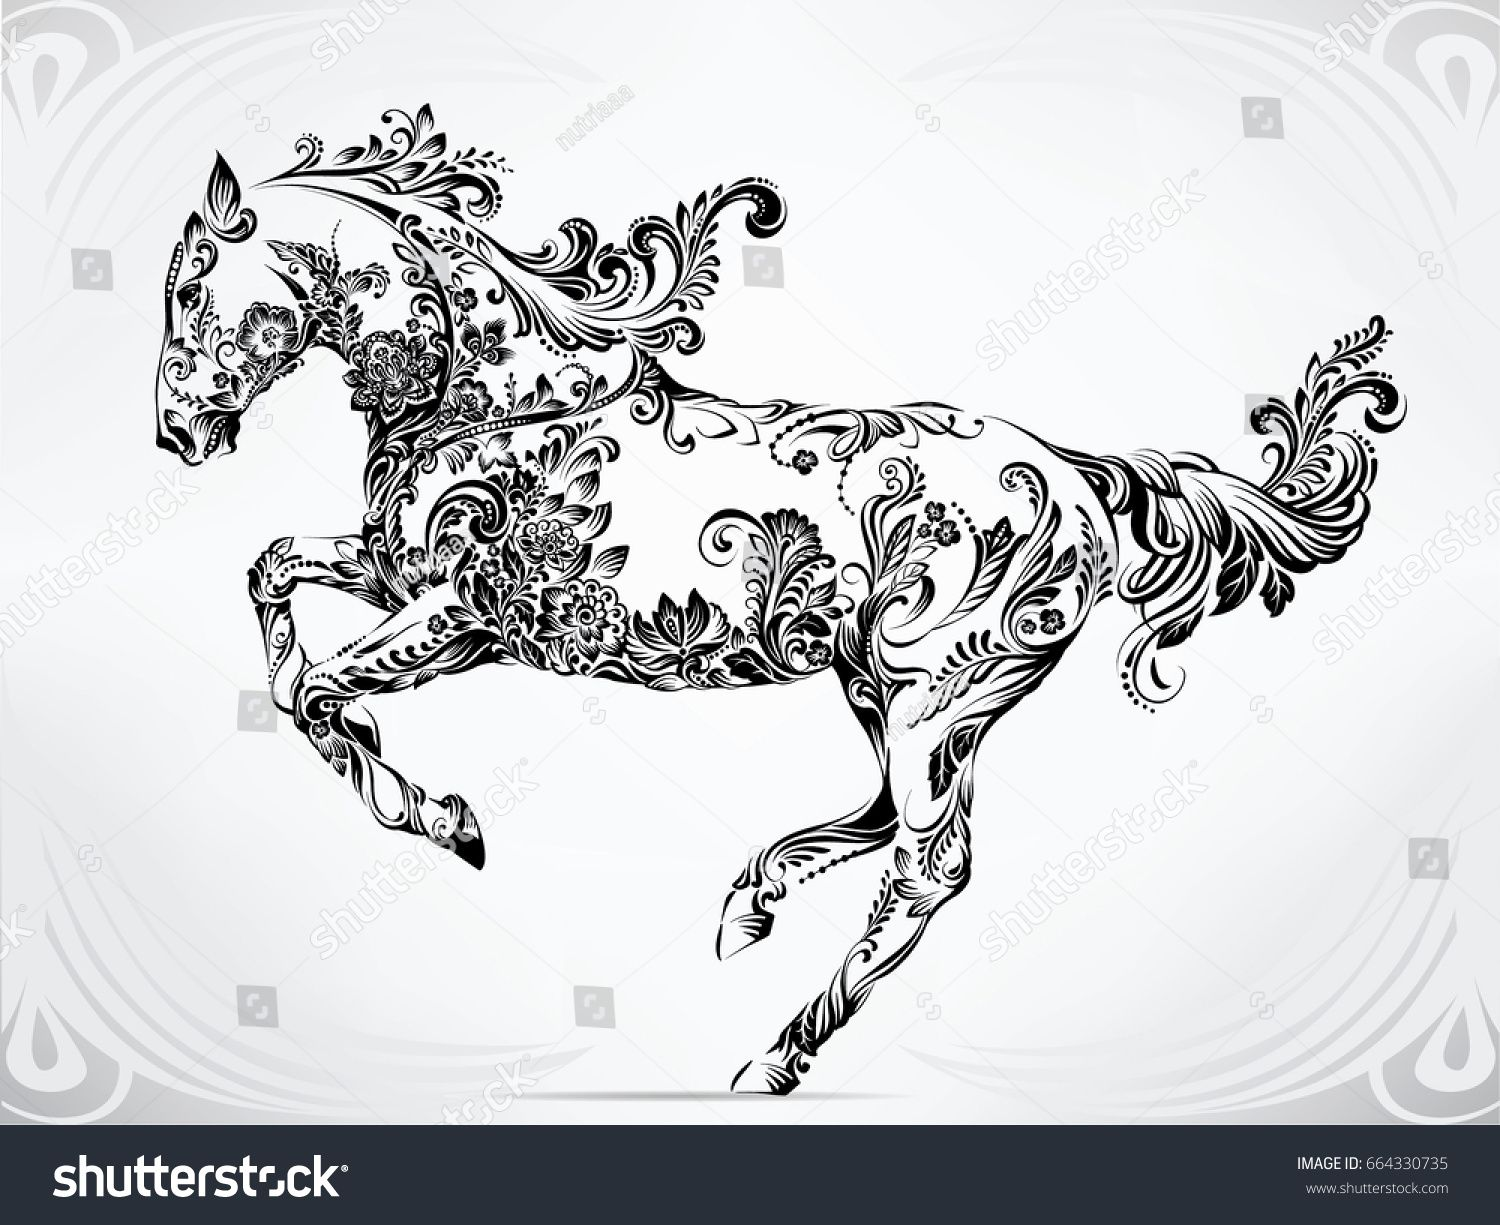 Running Horse In Floral Ornament Horse Tattoo Horse Drawings Celtic Horse Tattoo